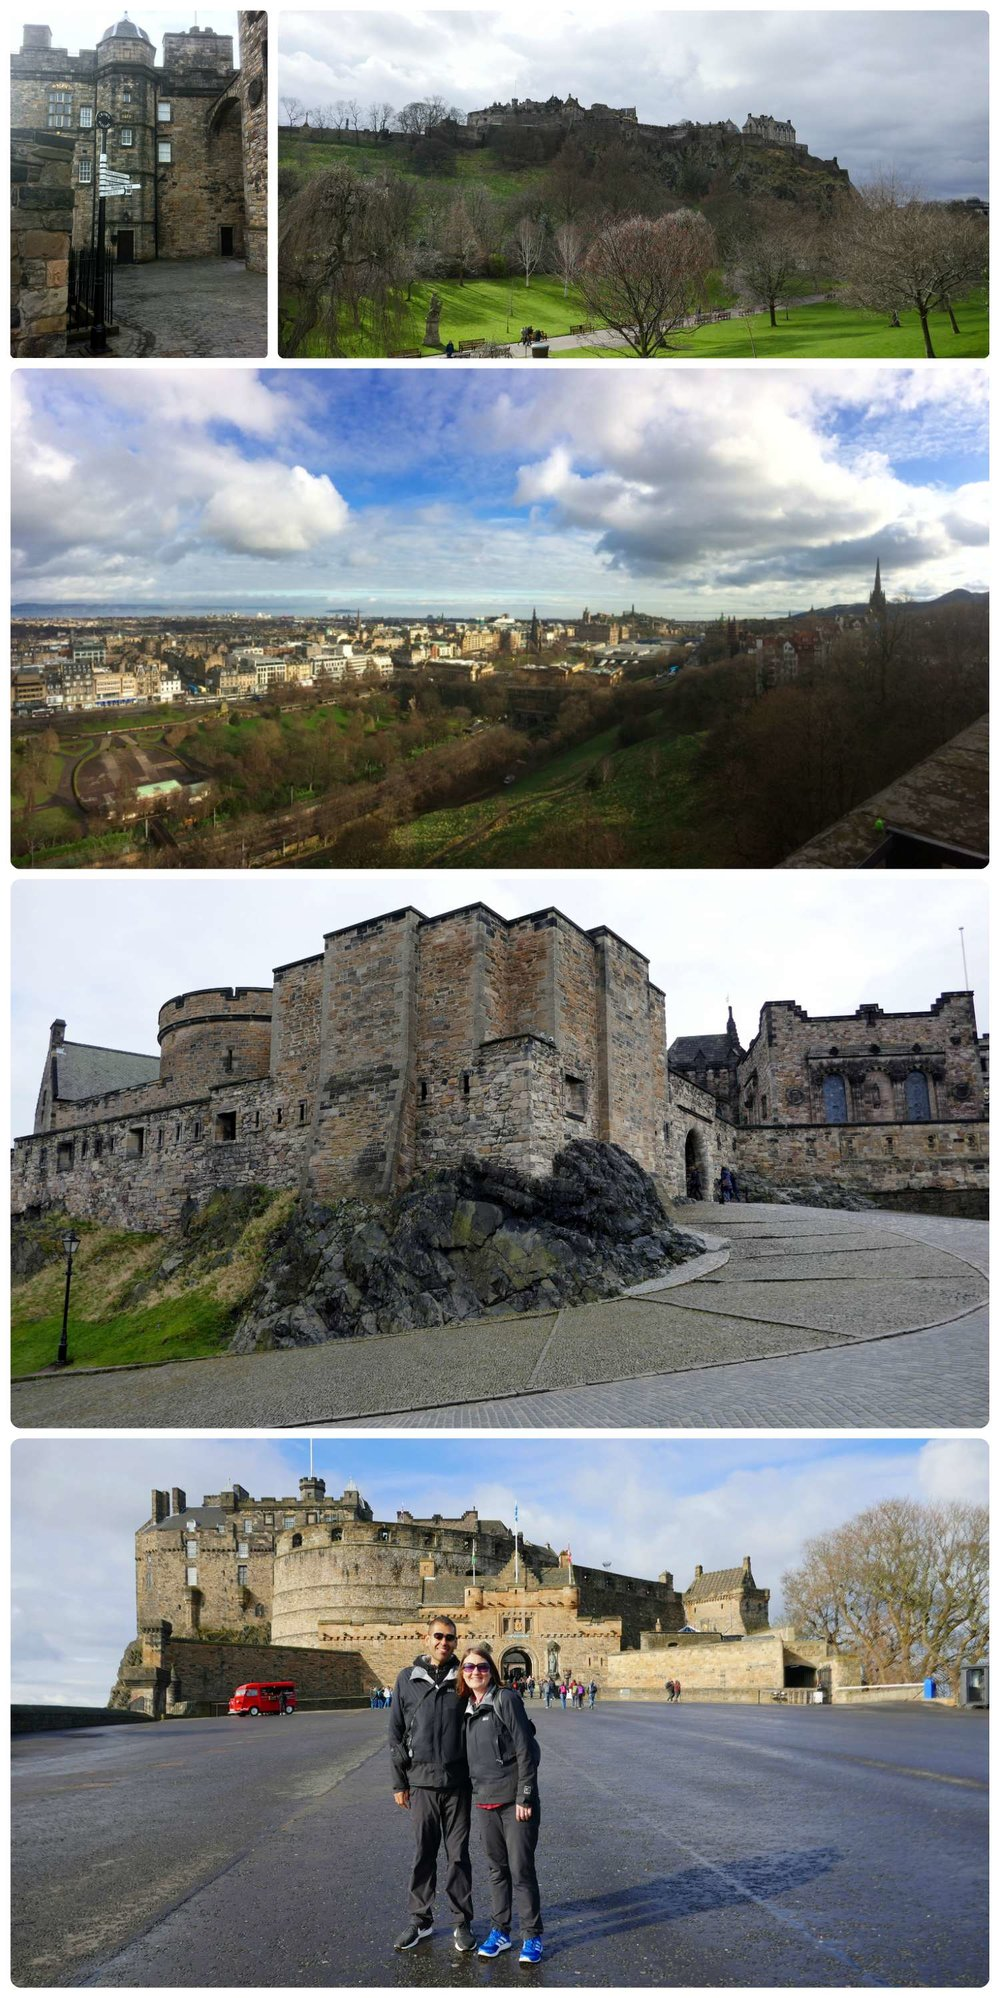 Top to bottom, left to right: Directional sign at Edinburgh Castle, Princess Street Gardens with view of Edinburgh Castle, view of city from the top of the castle, inside the castle, us at Edinburgh Castle.